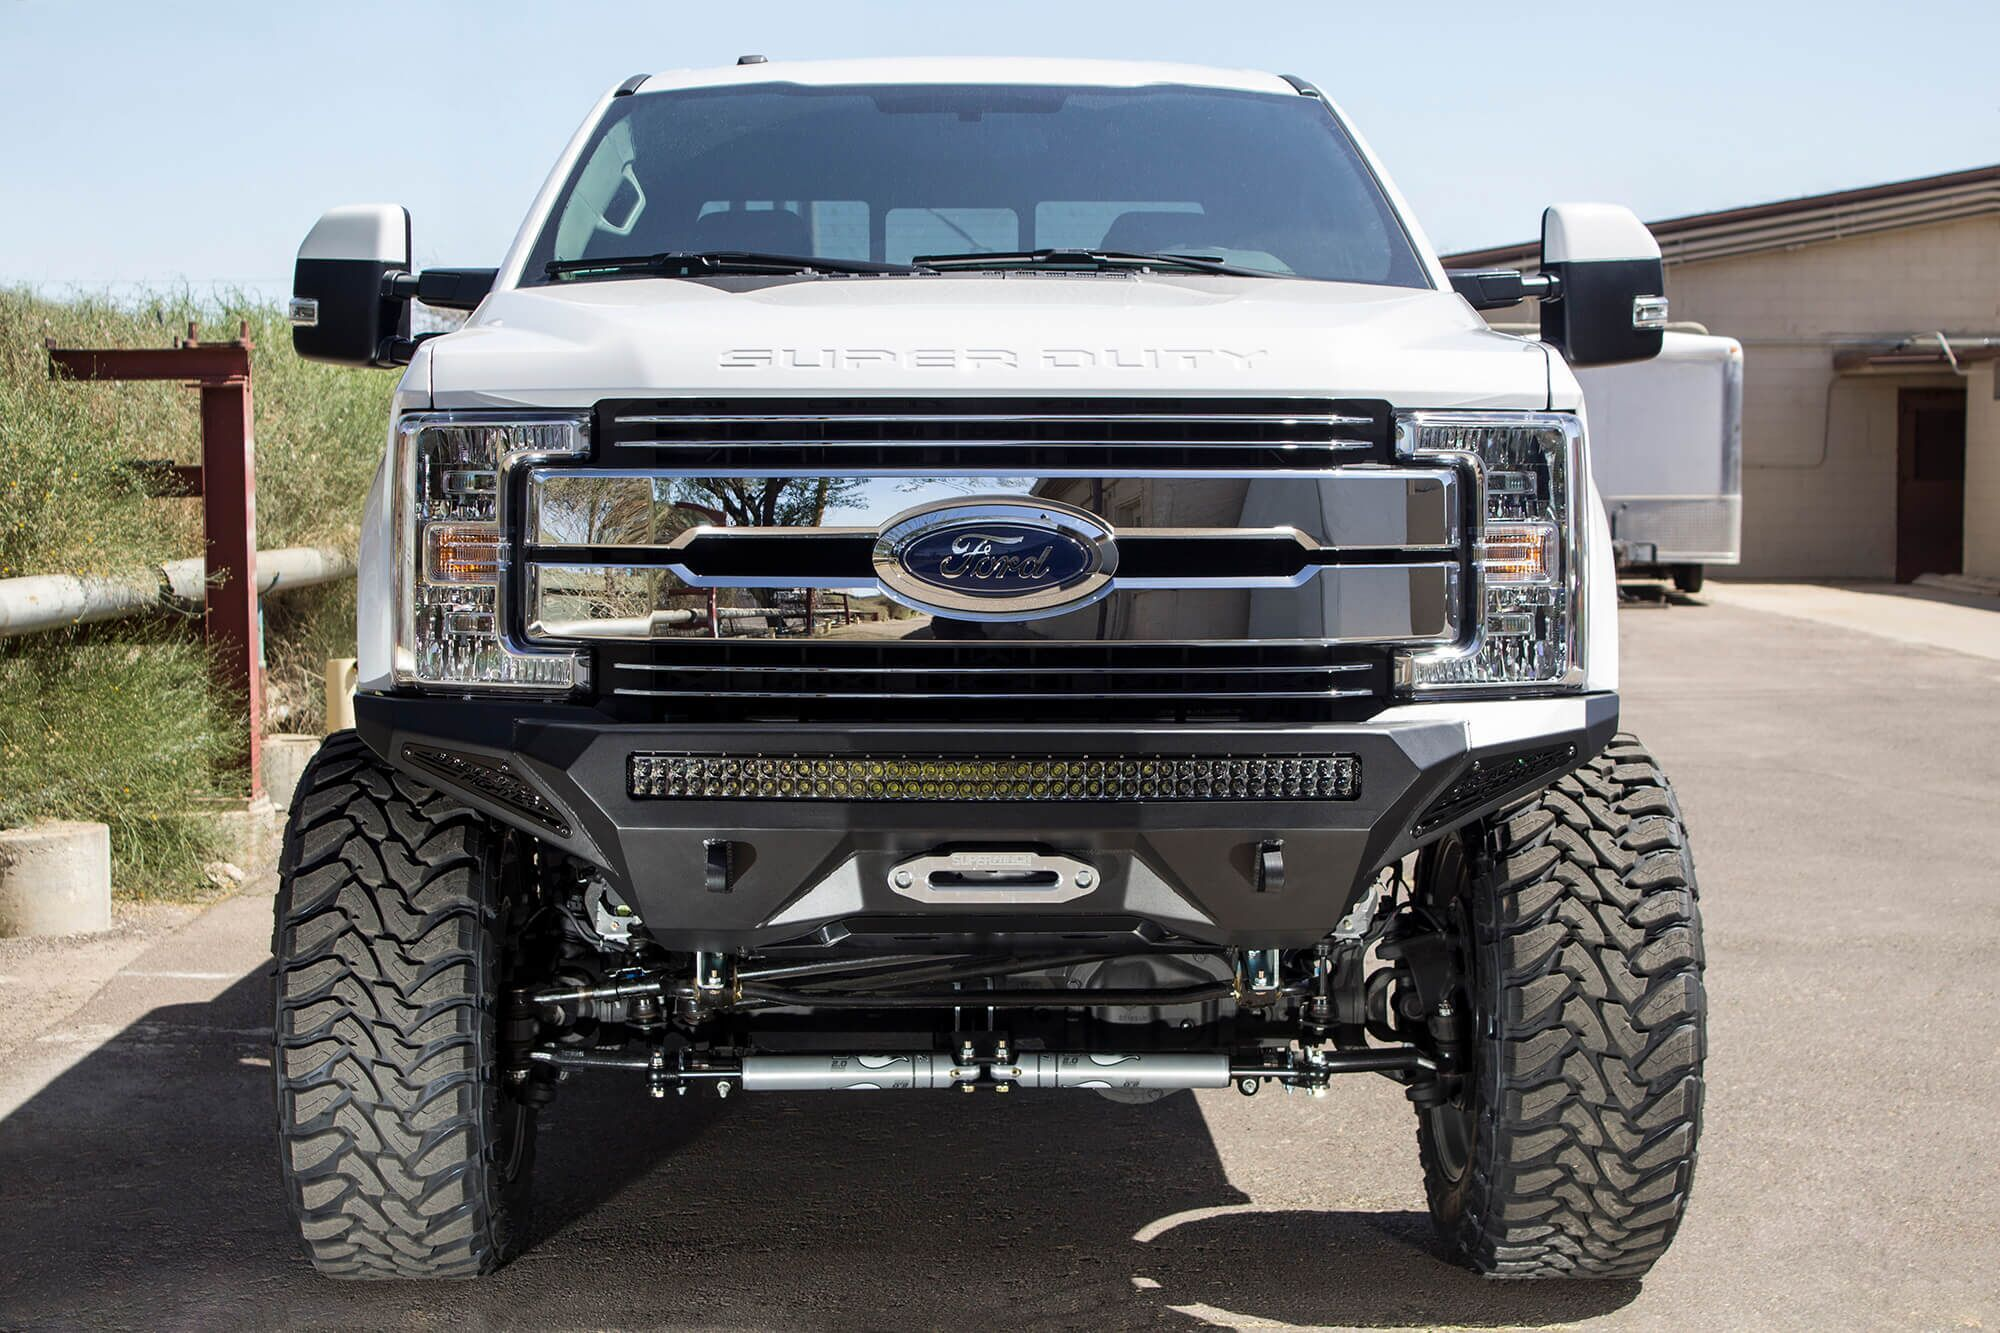 2017 Super Duty Winch Front Bumper Ford Superduty F250 F350